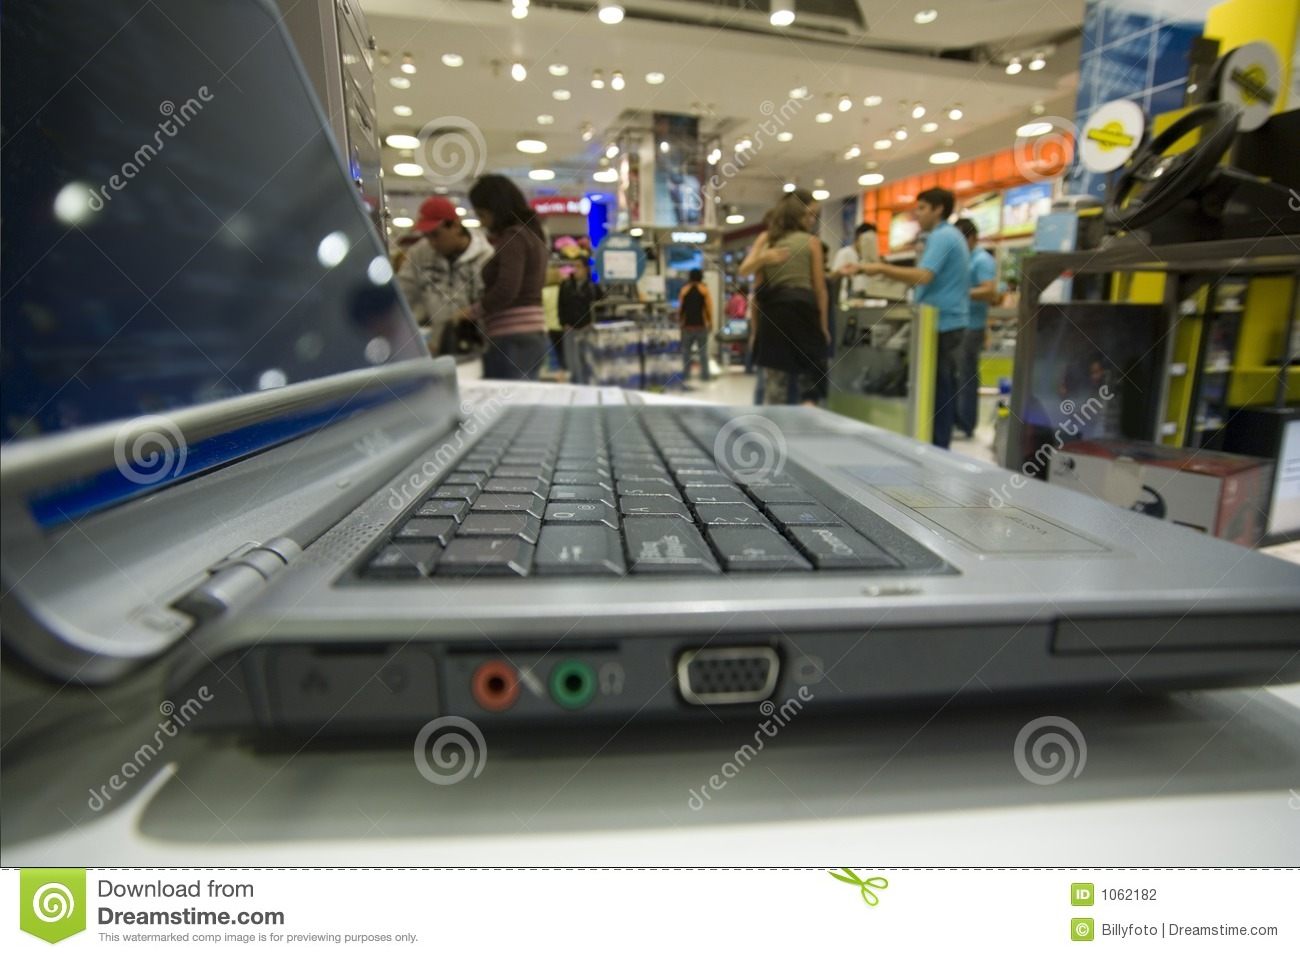 Computer department in a big store